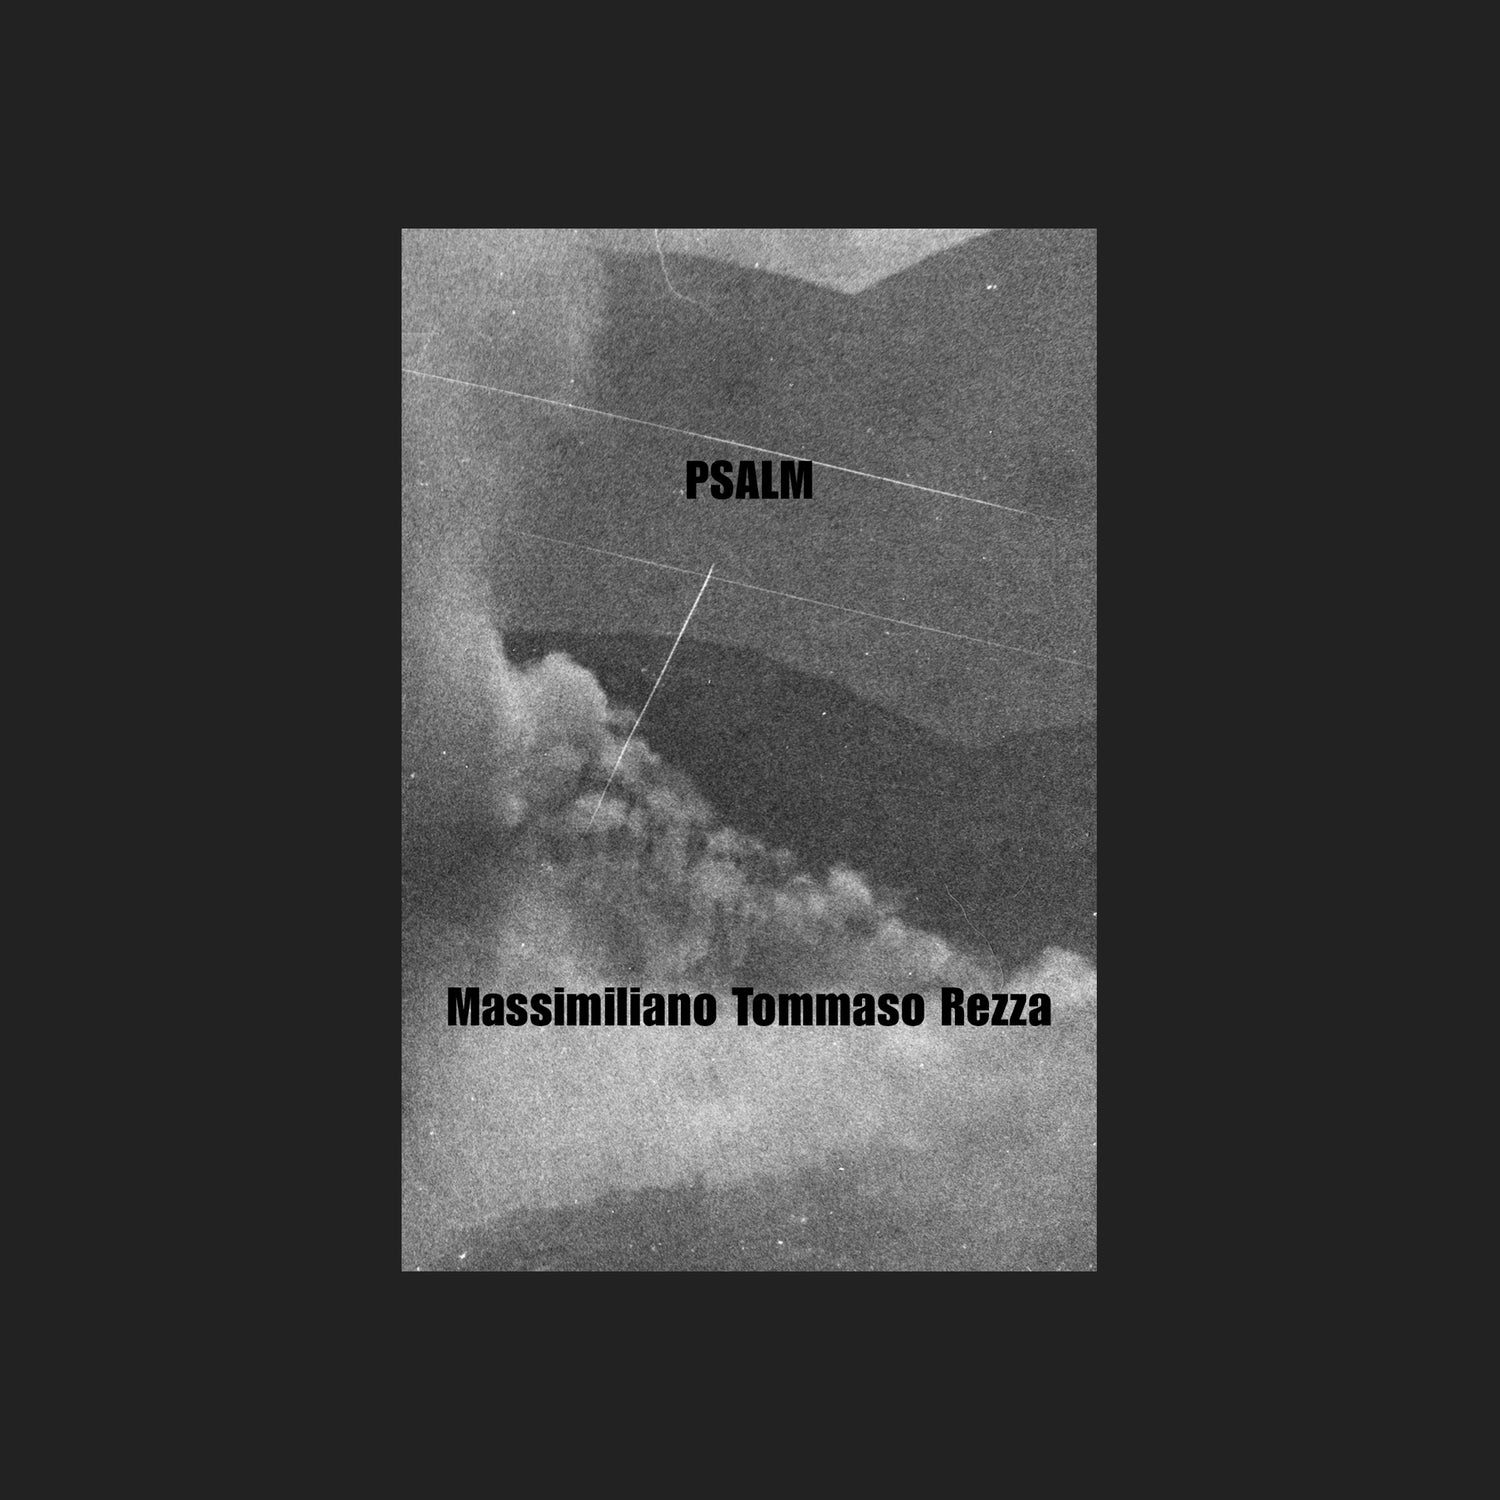 PSALM - Massimiliano Tommaso Rezza